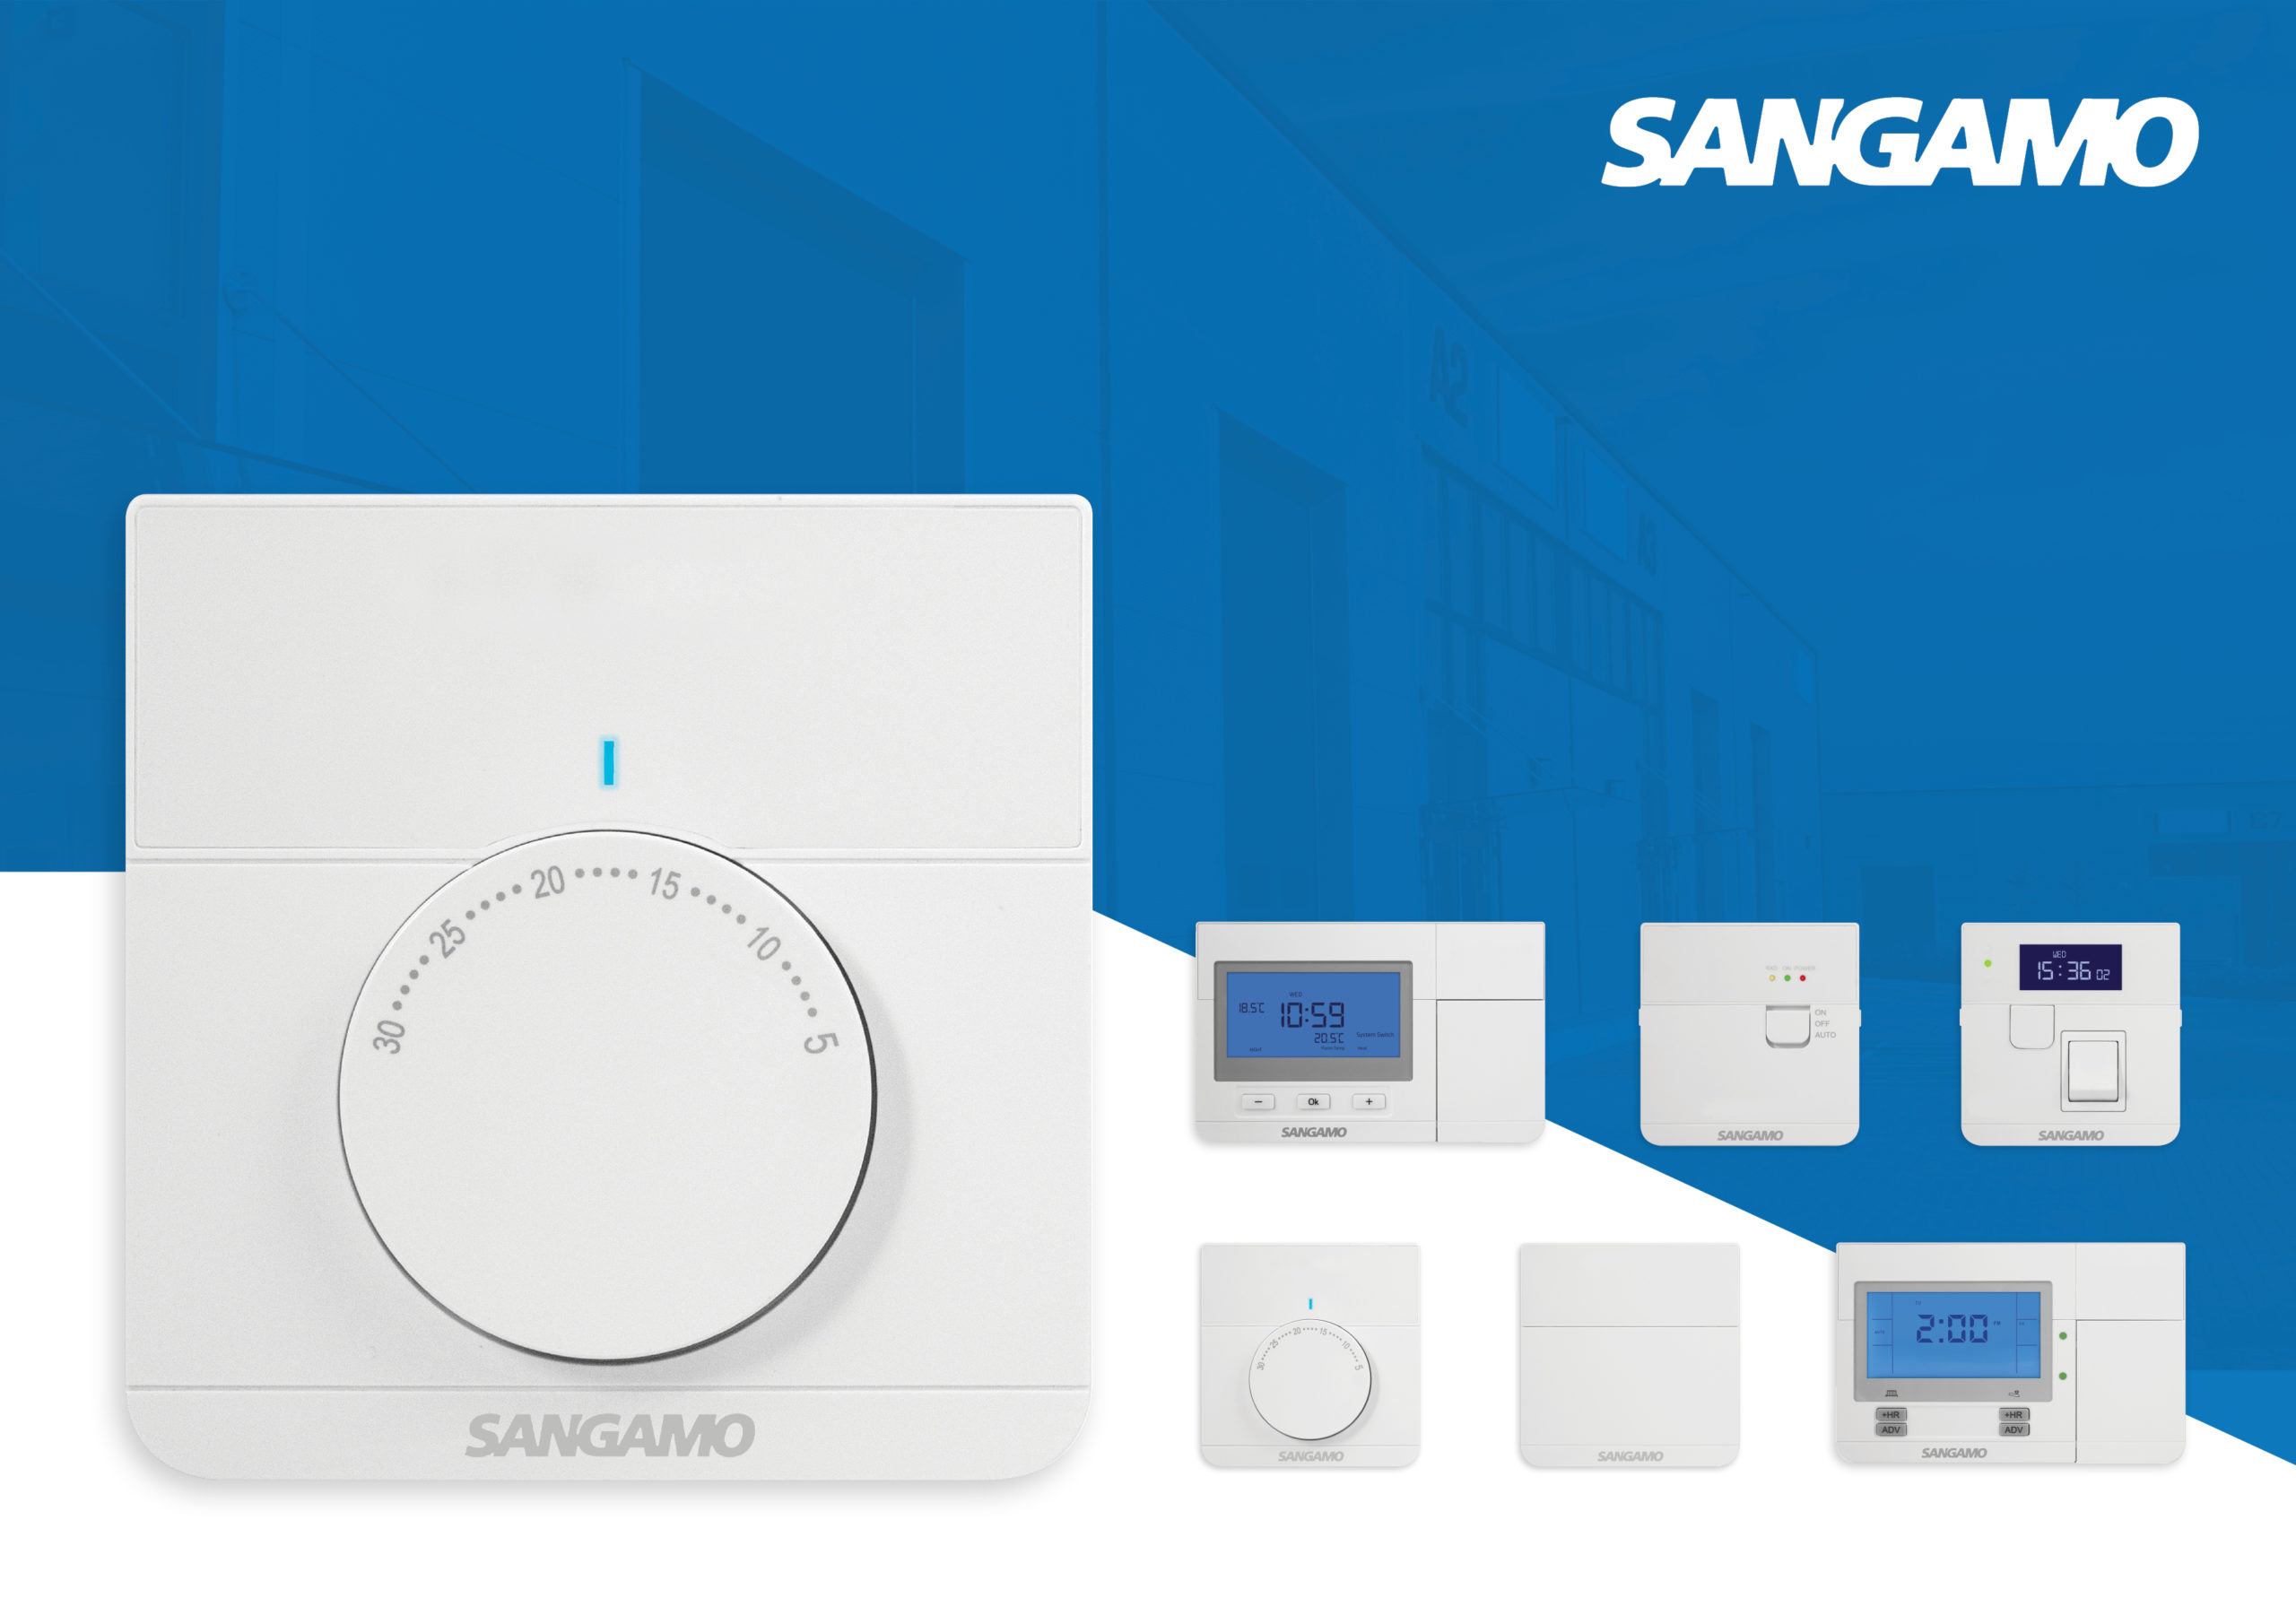 Sangamo timers and heating controls range revamped